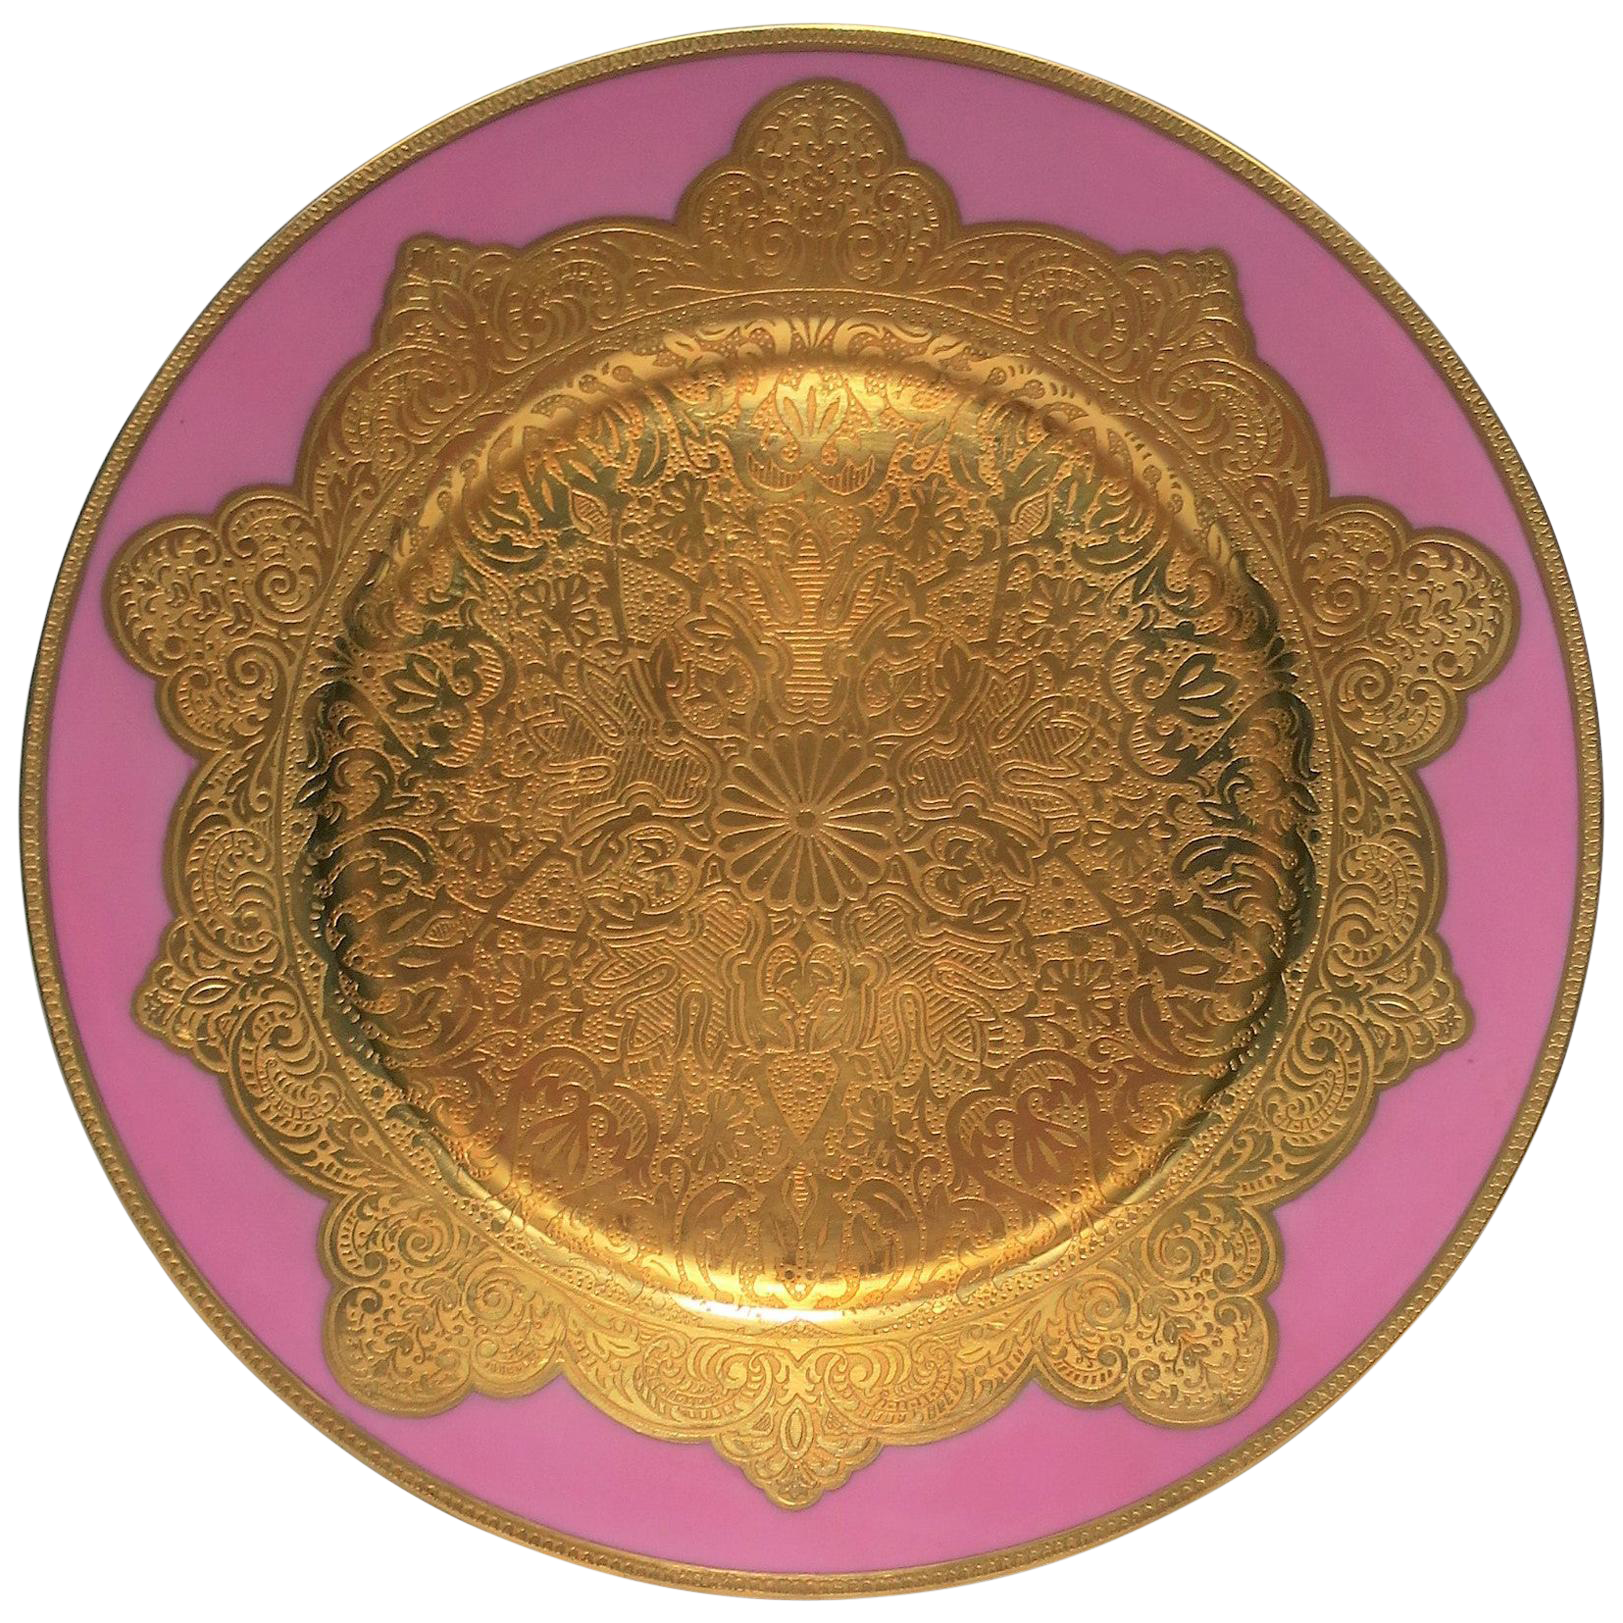 German Pink And Gold Plate Or Wall Art Chairish